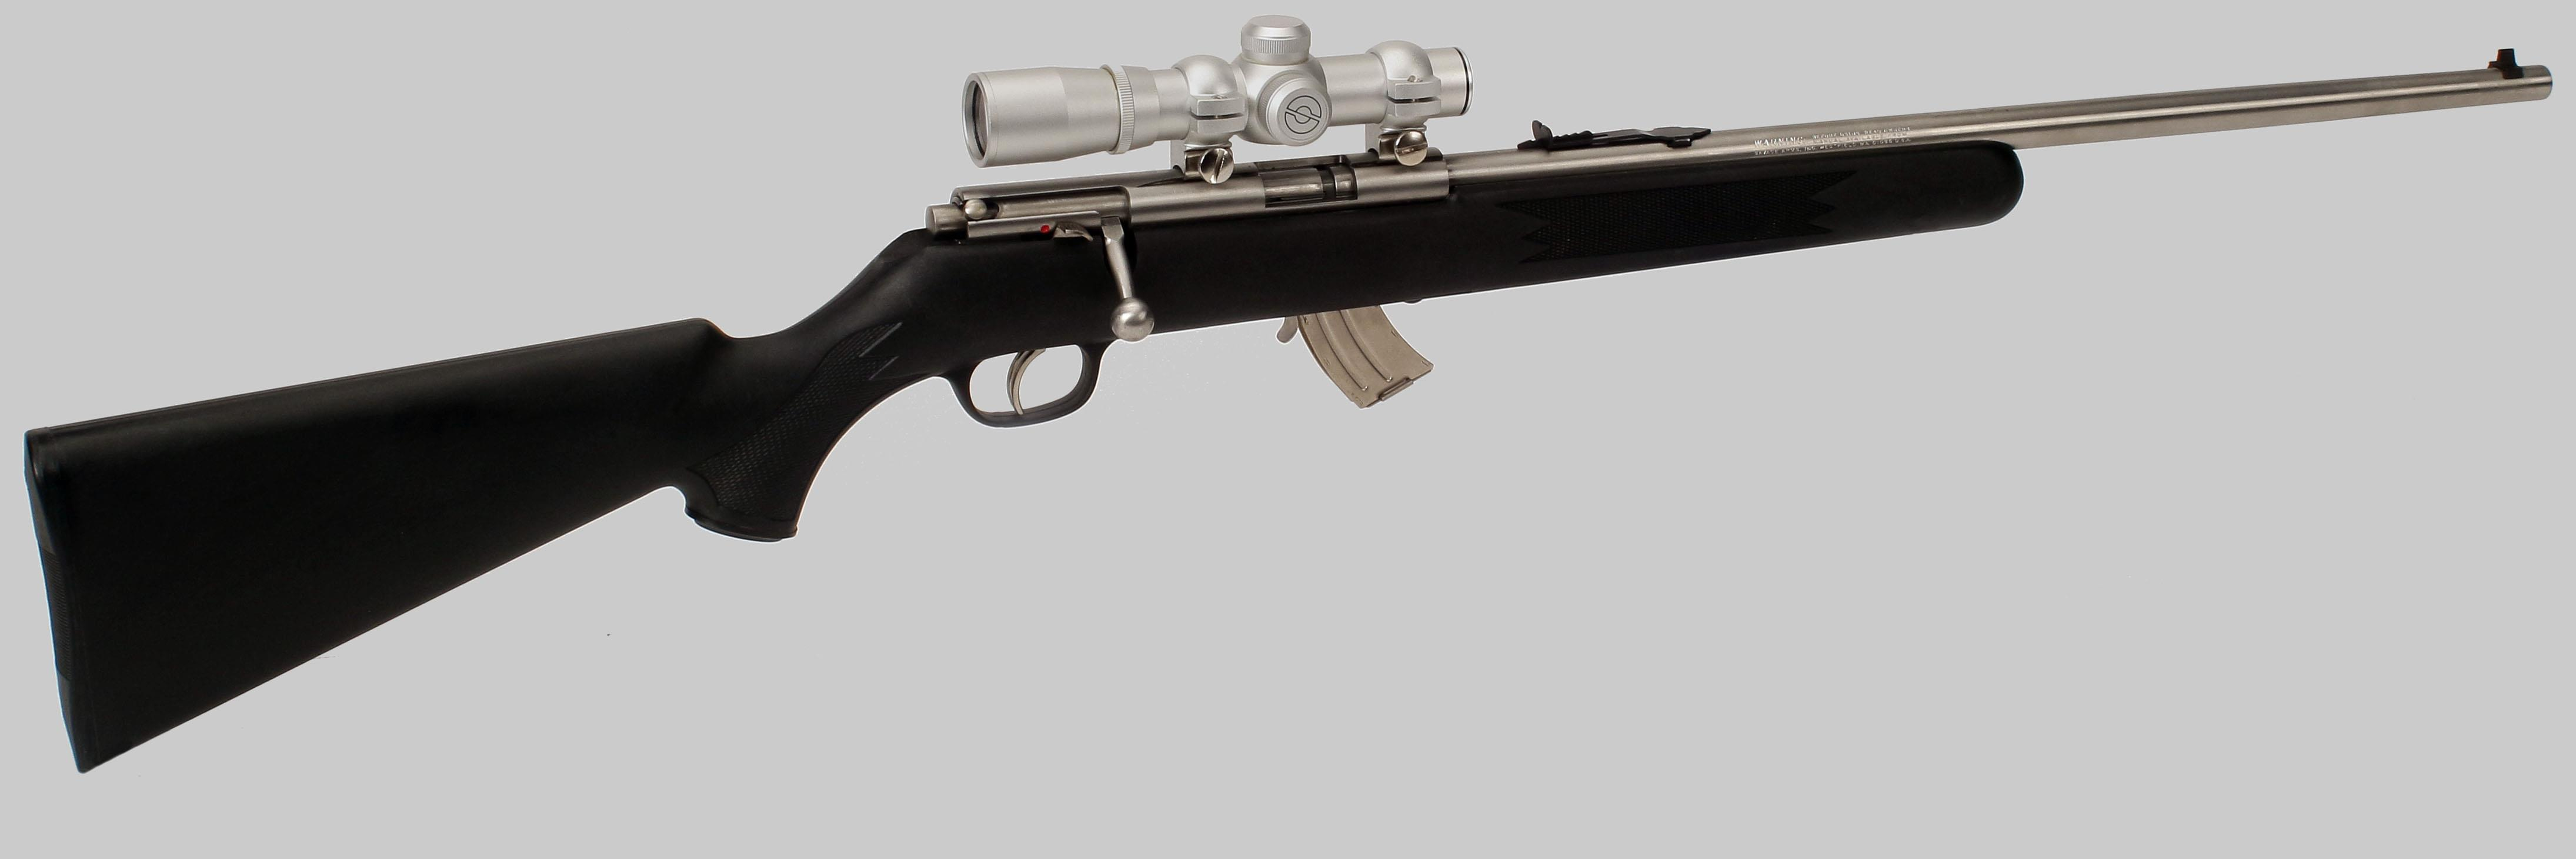 Savage MKII Bolt Action Rifle  Guns > Rifles > Savage Rifles > Standard Bolt Action > Sporting